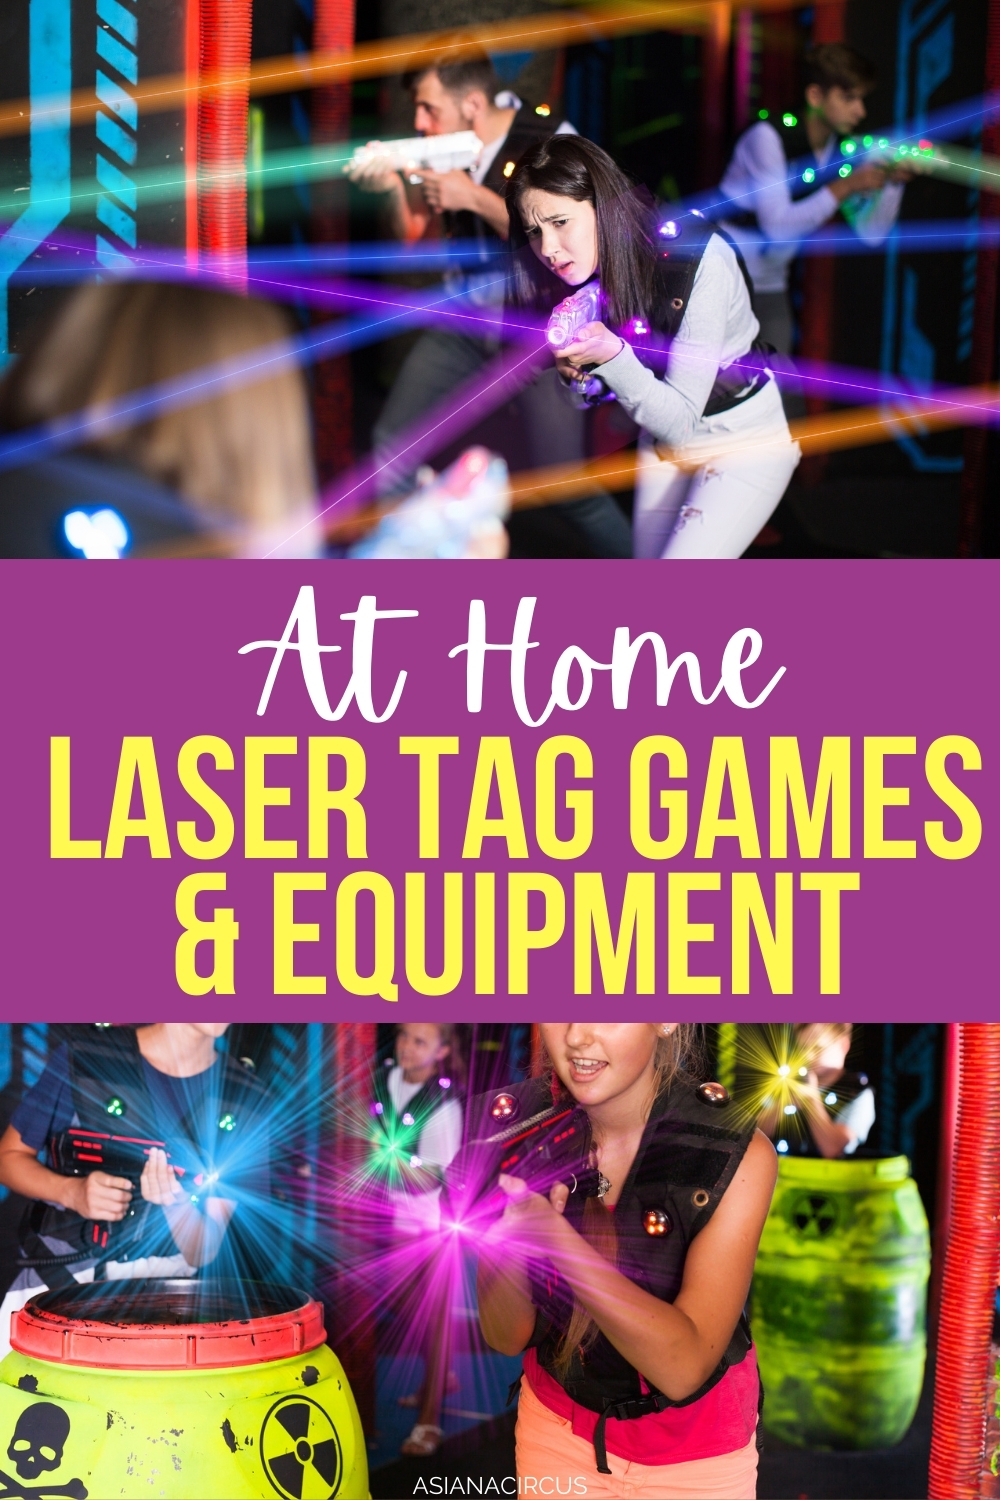 Best Laser Tag Games For Home Use - Laser Tag Equipment (1)